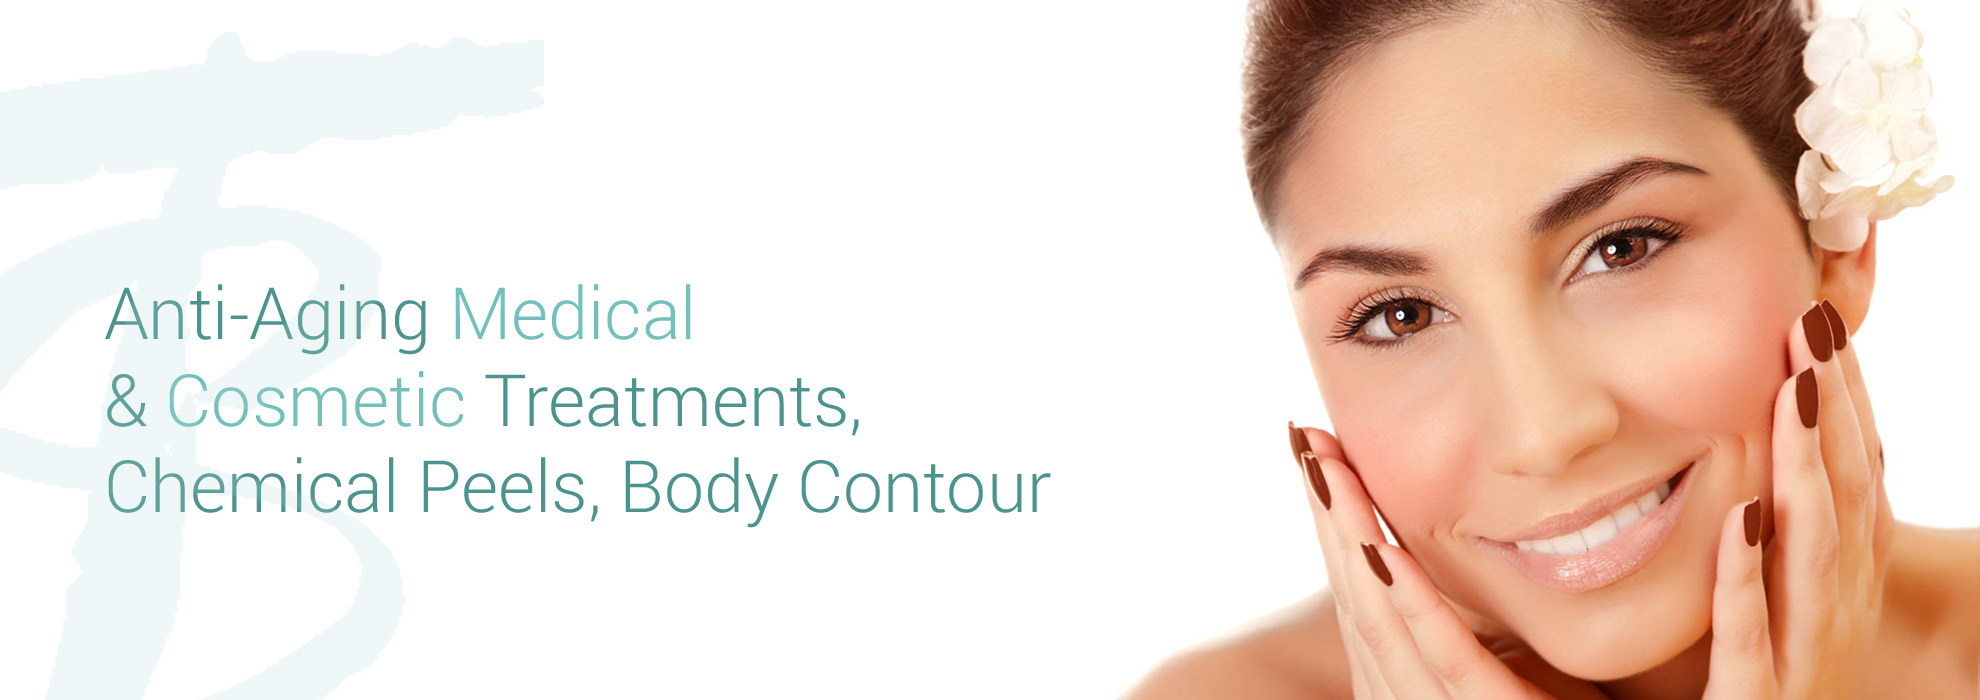 Medical Spa, Skin Irregularity Removal, Manicures, Pedicures ...